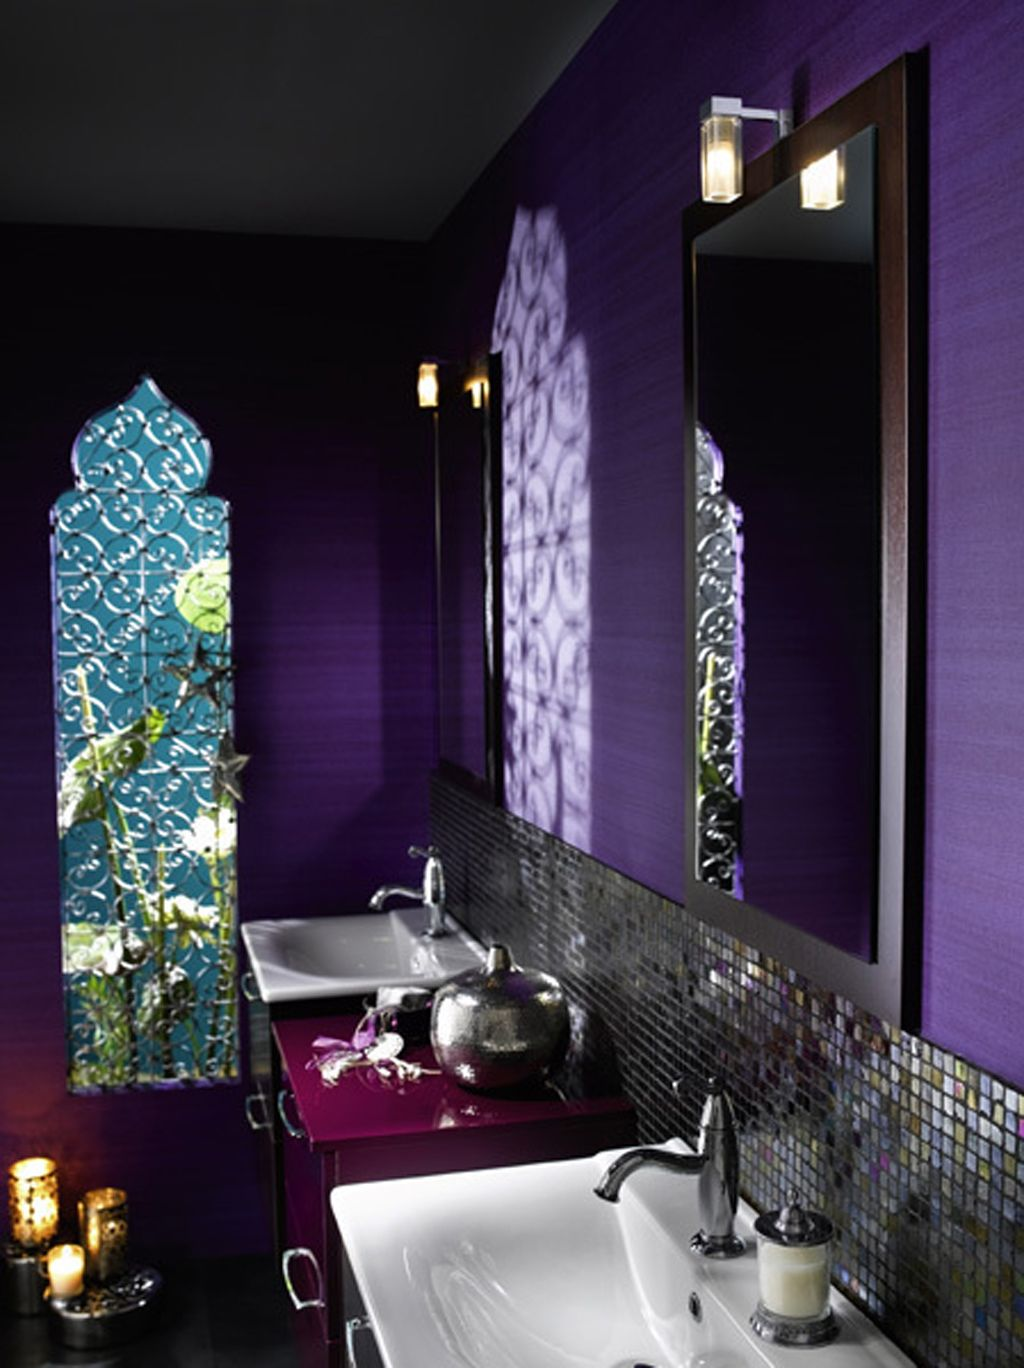 Cool Moroccan Bathroom Furniture From Delpha : Modern Moroccan Bathroom  Furniture With Purple Wall And Big Window And White Washbasin